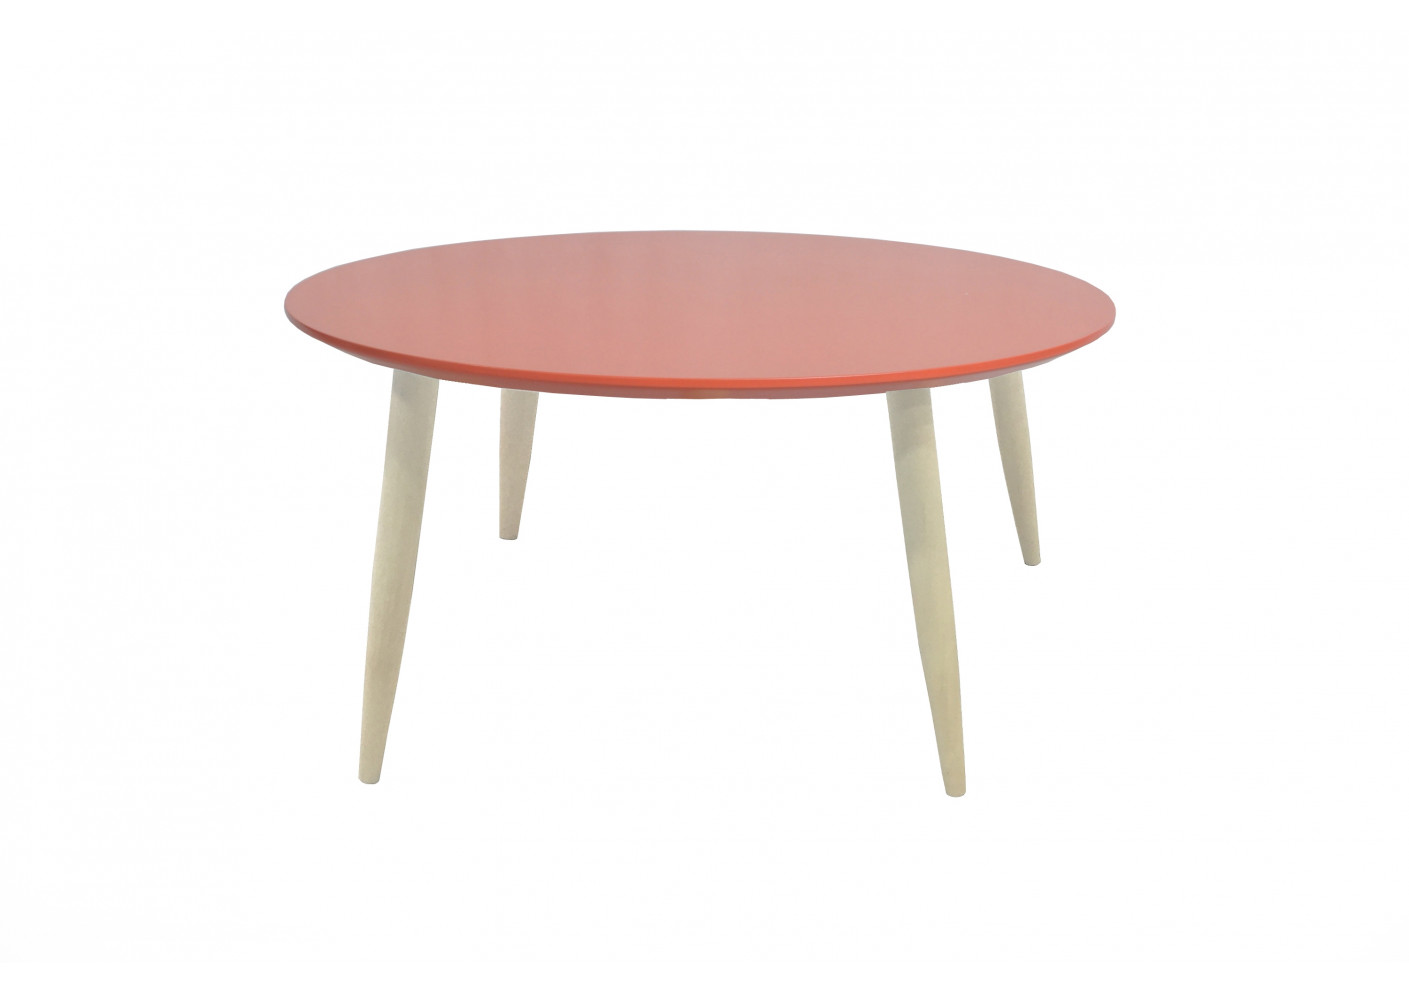 Table Manon Table Basse Ronde Basse Corail EH2IDW9beY